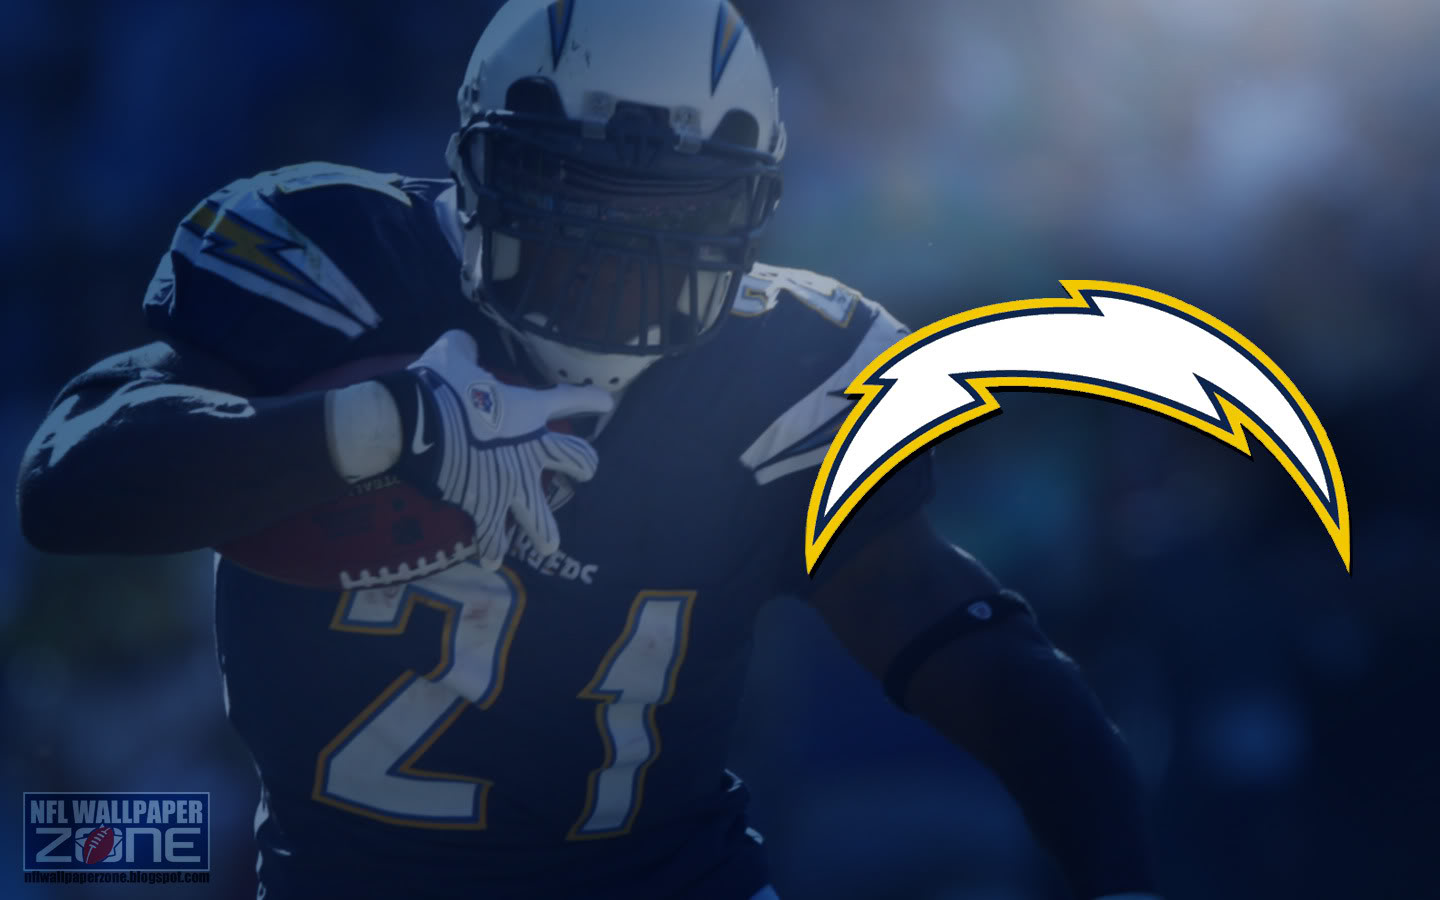 Free Download Nfl Wallpaper Zone San Diego Chargers Wallpaper